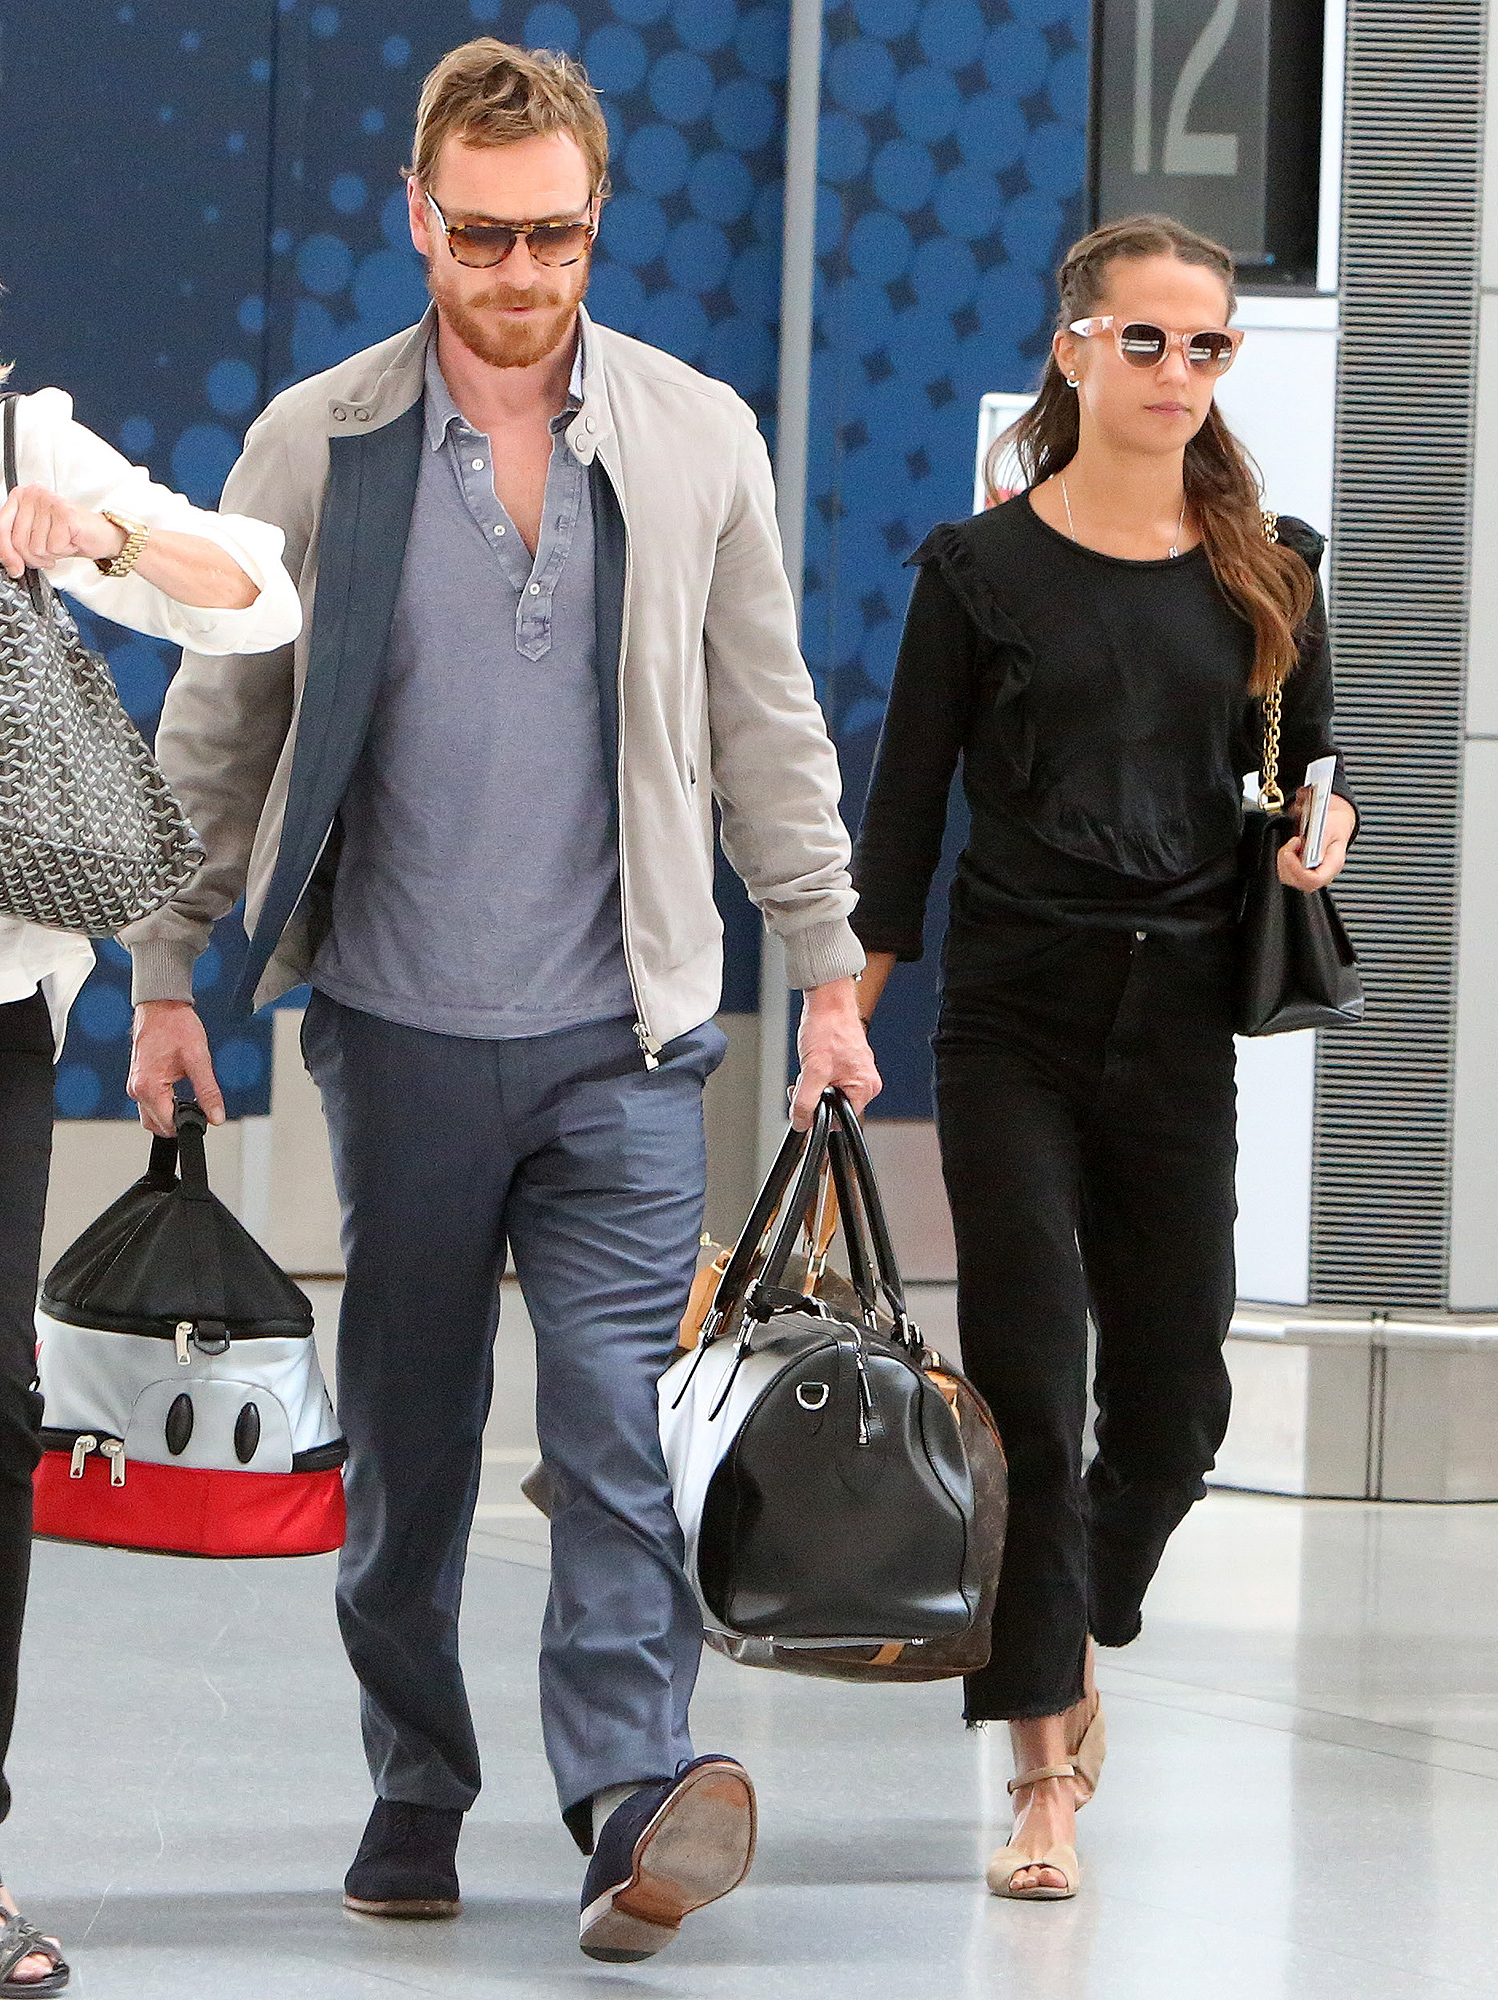 EXCLUSIVE: Michael Fassbender and Alicia Vikander spotted flying out of Toronto Airport